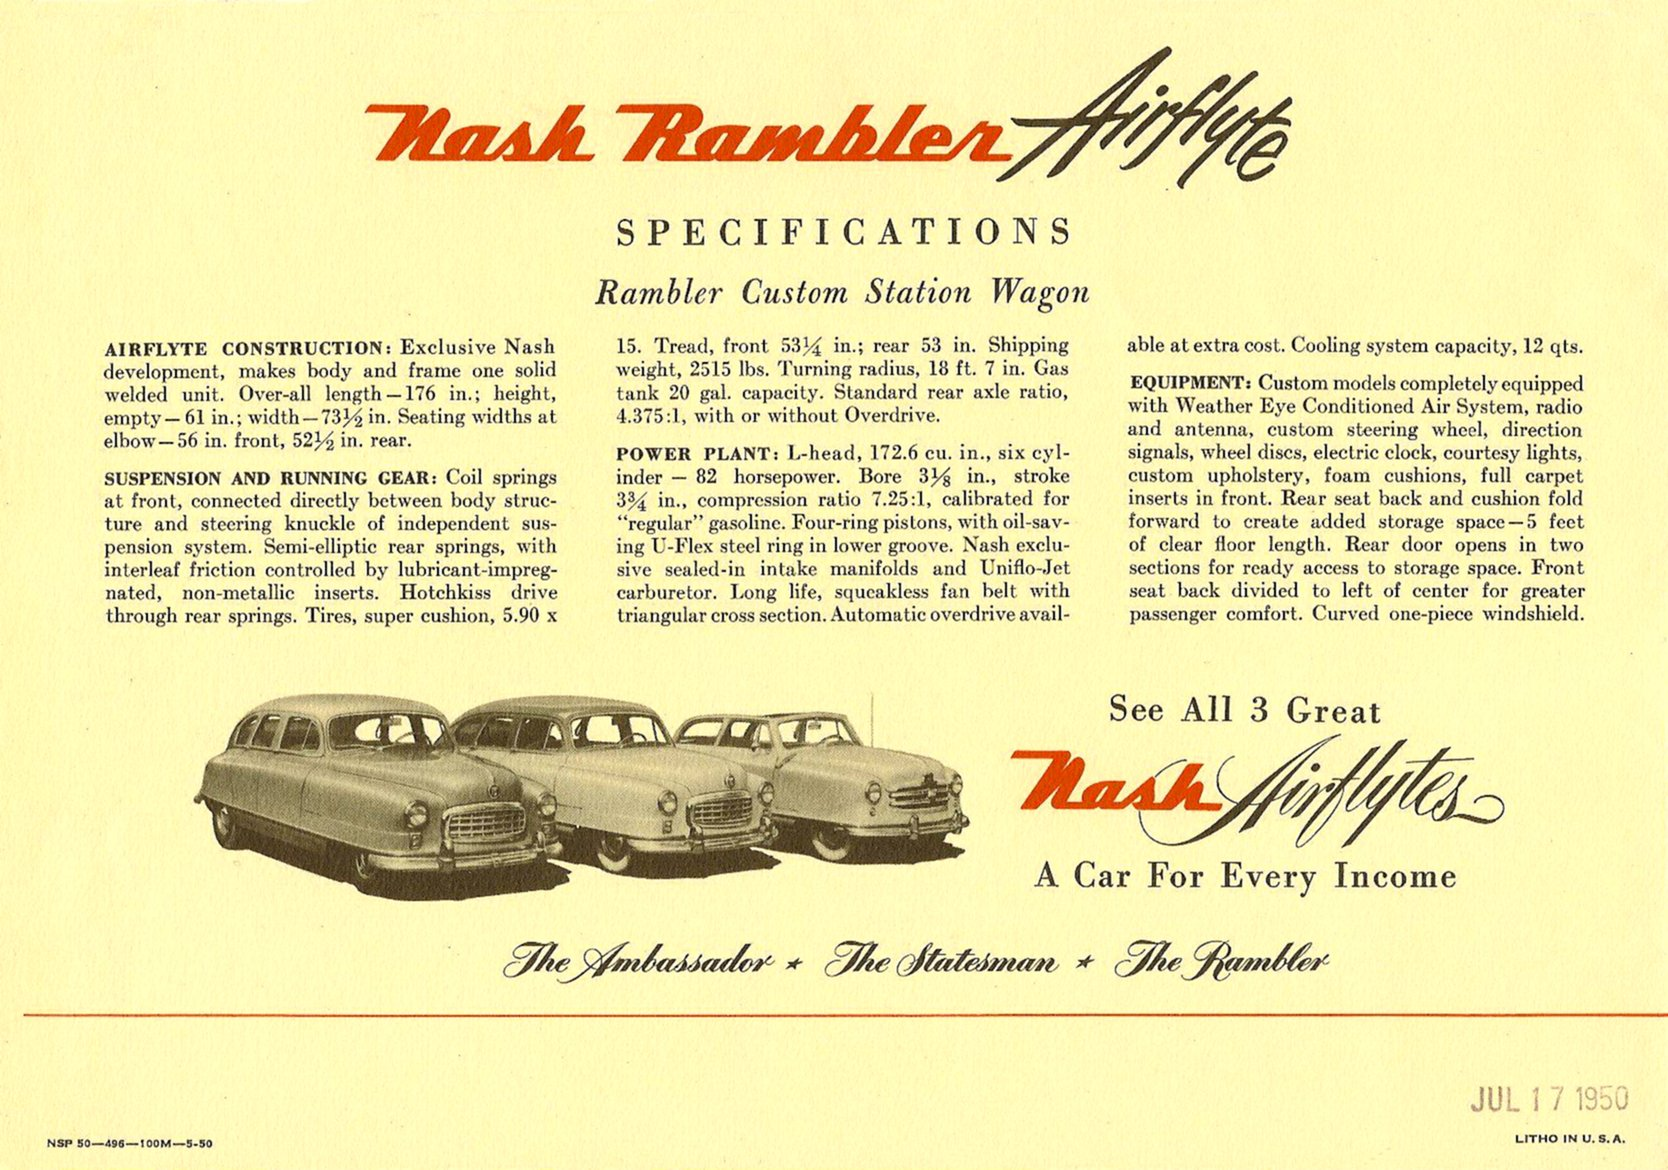 The Nash Rambler Airflyte 1950 America's Lowest-Priced Custom Station Wagon Back page Dated: Jul 17, 1950 Folded: 11″x7.75″ Open: 22″x15.5″ NSP 50-496-100M-5-50